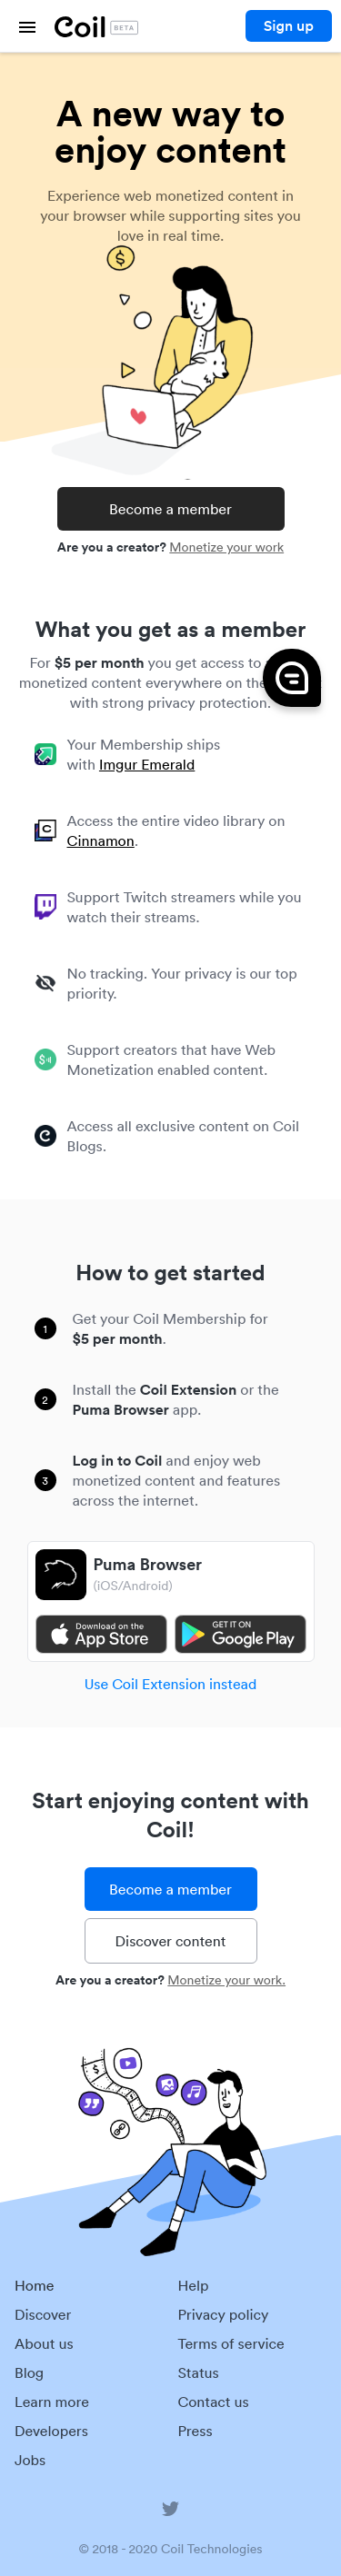 Example of Design for Uncategorized, Mobile Landing Page by coil.com | Mobile Landing Page Design